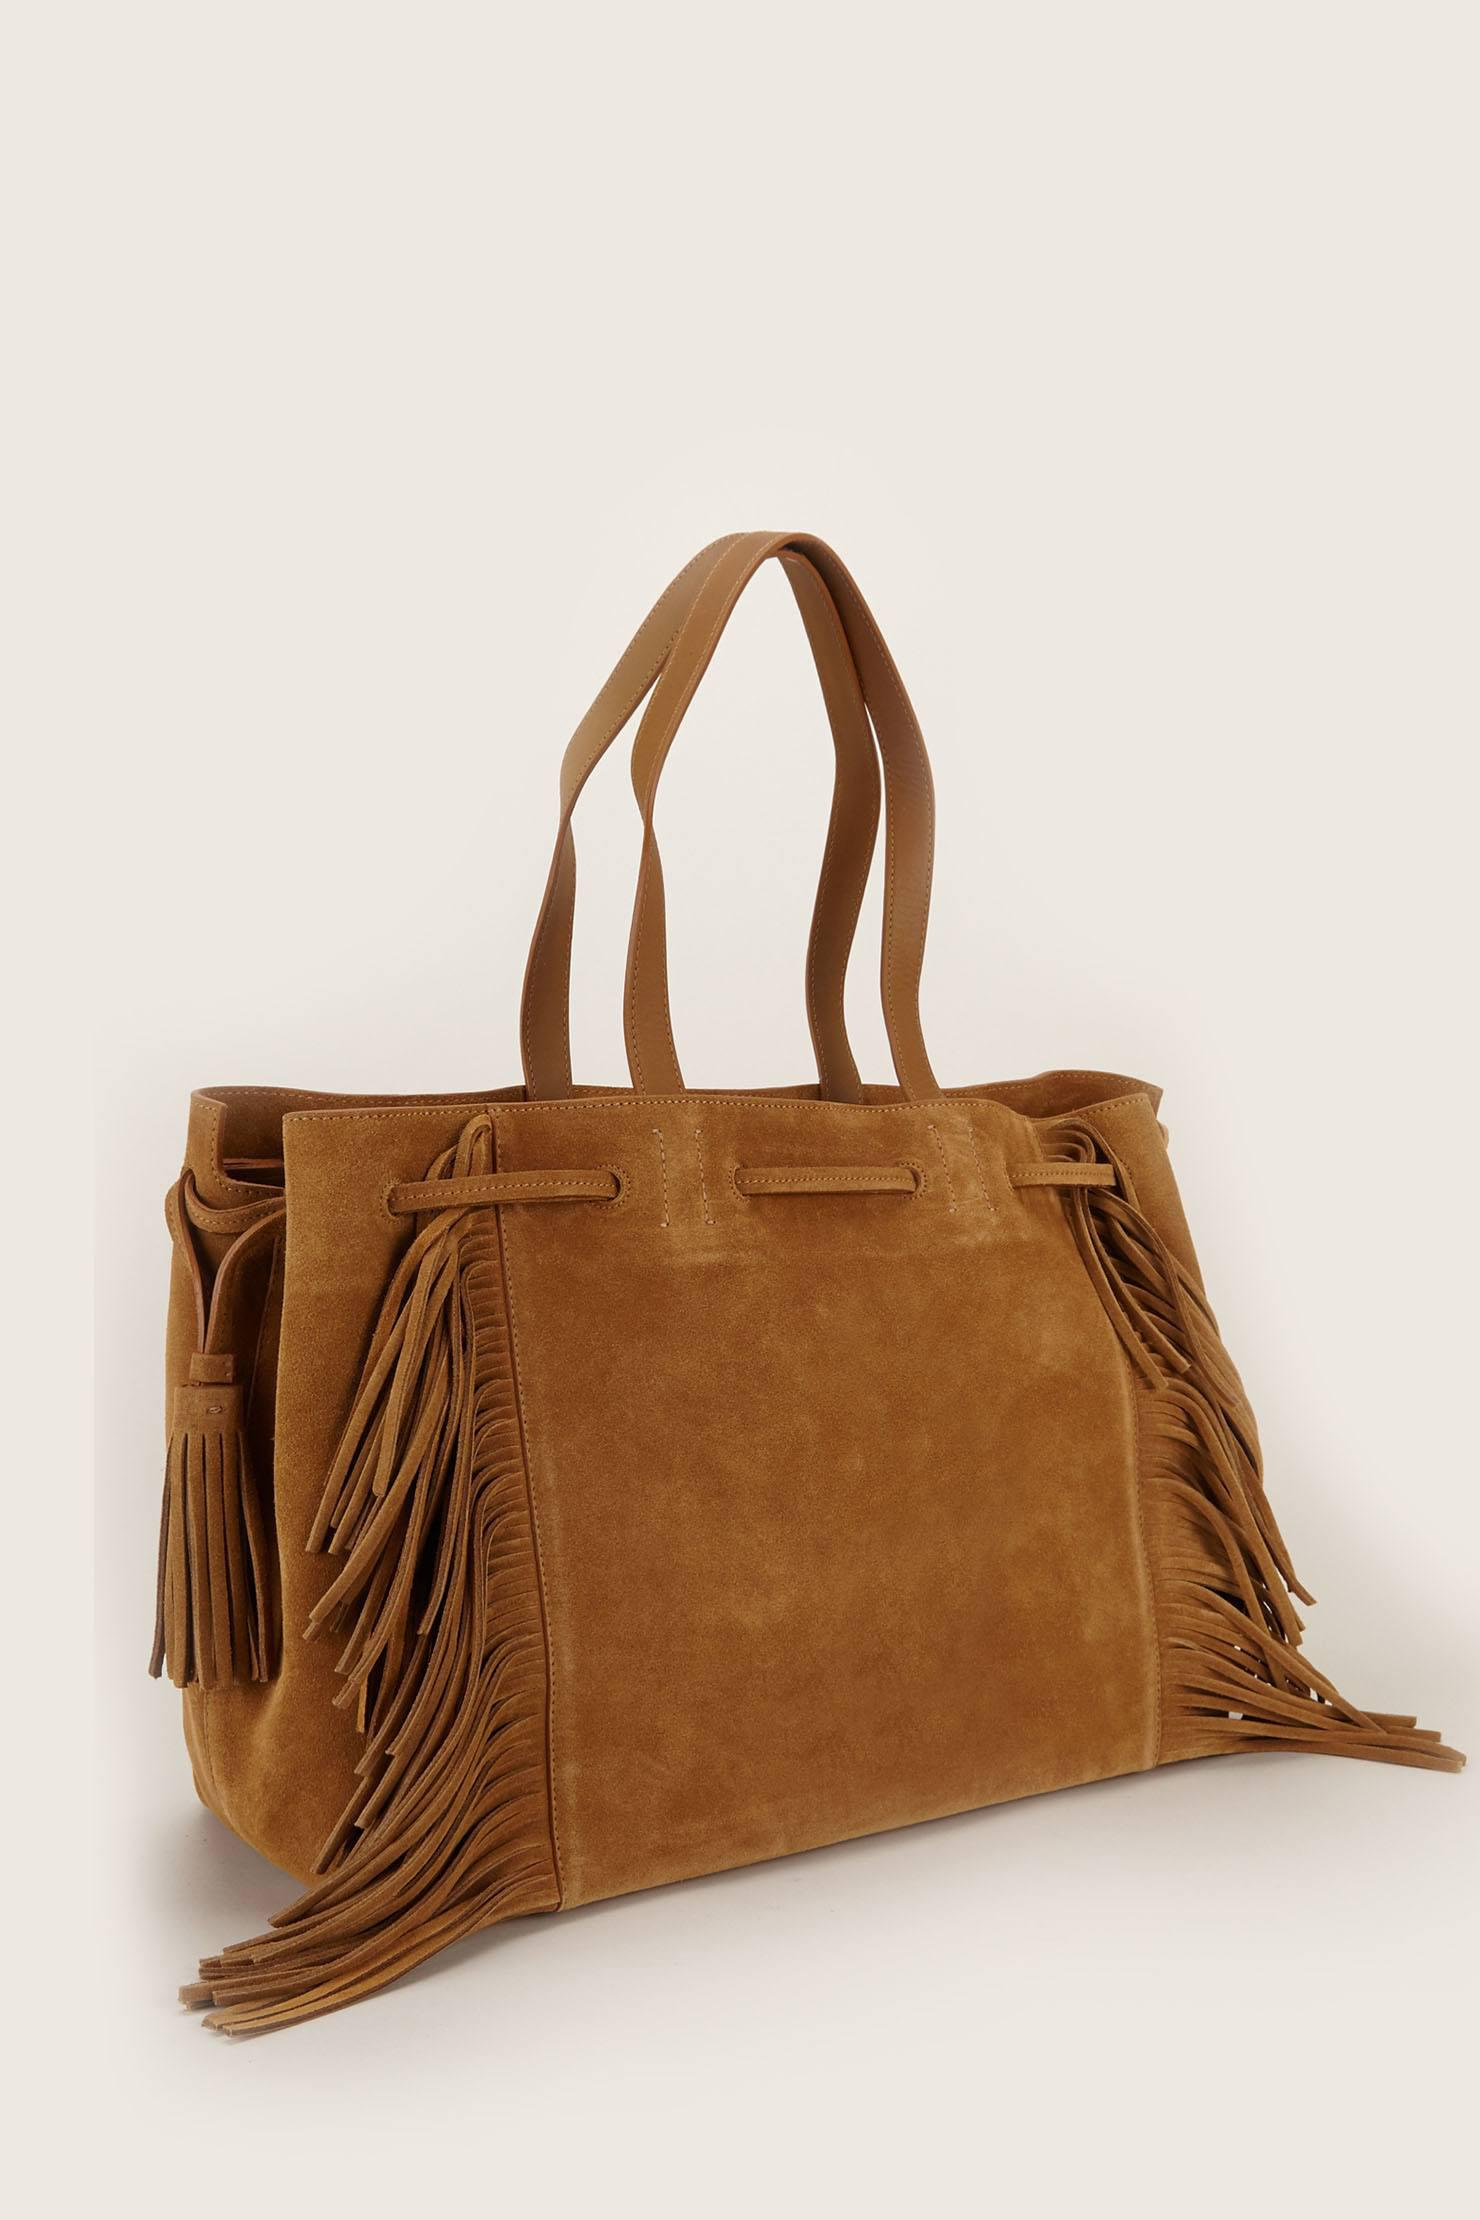 Only You Tote Bag in Tan Leather Gerard Darel xpba4QTm41